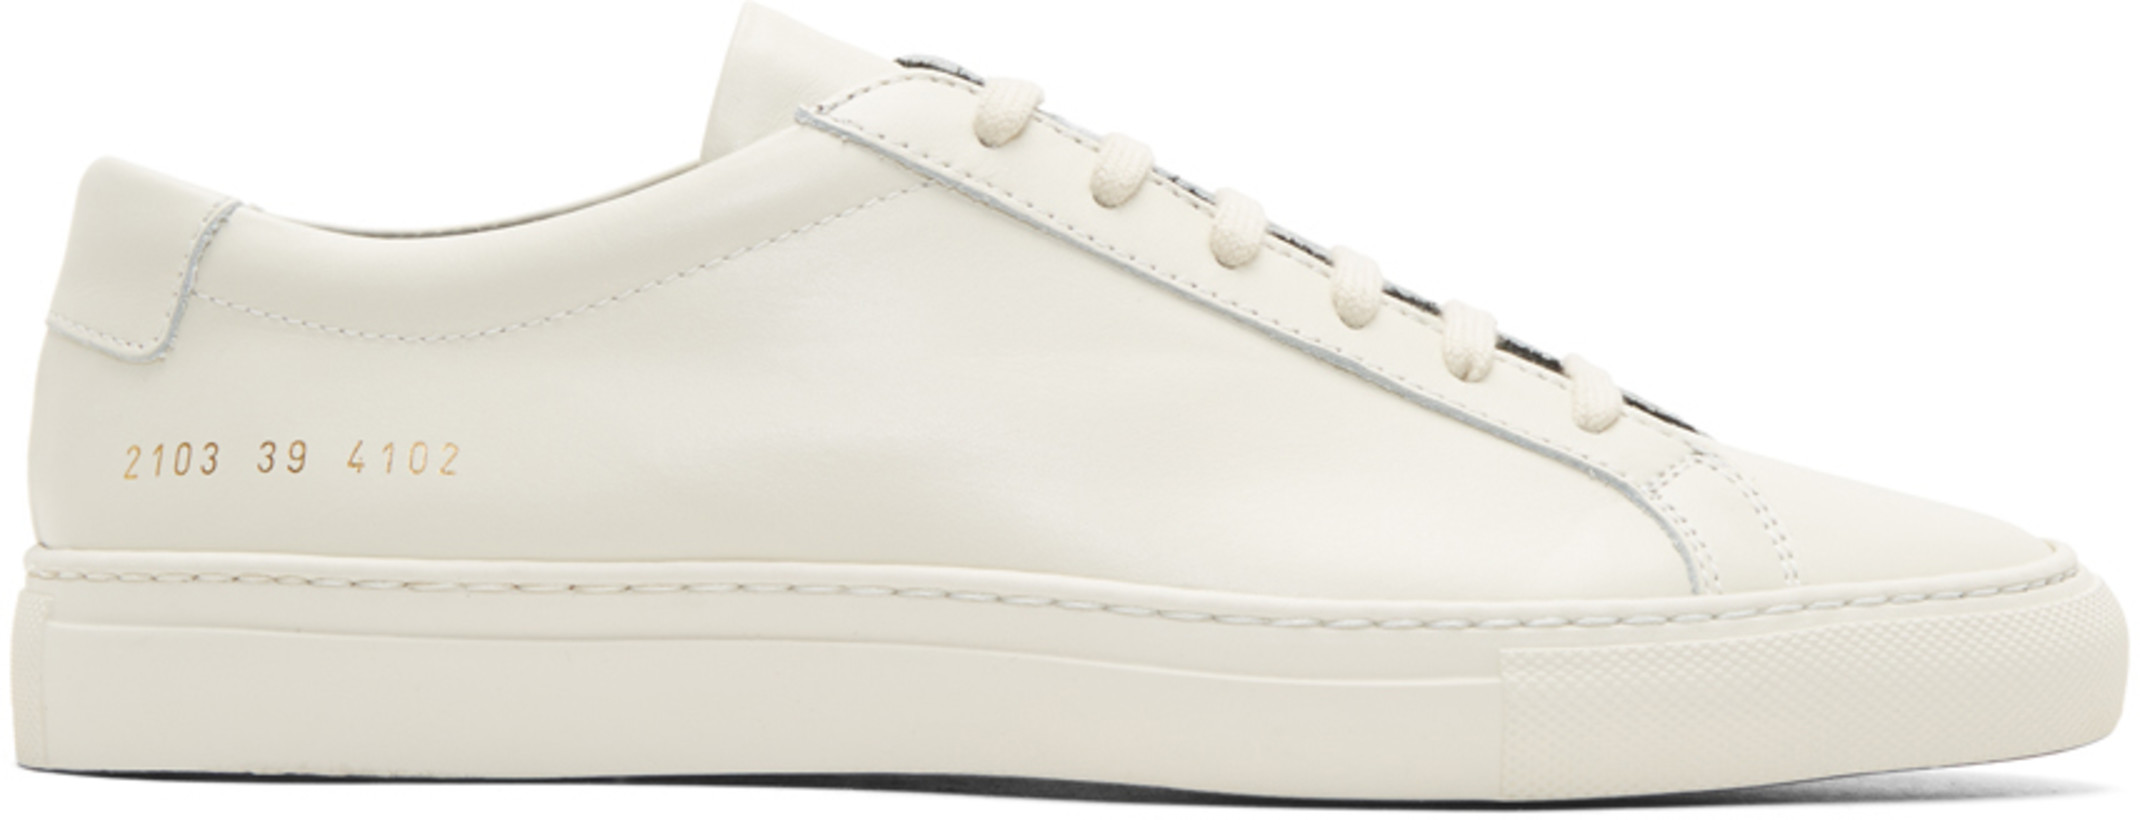 Common Projects Off-White Achilles Low Duo-Tone Sneakers